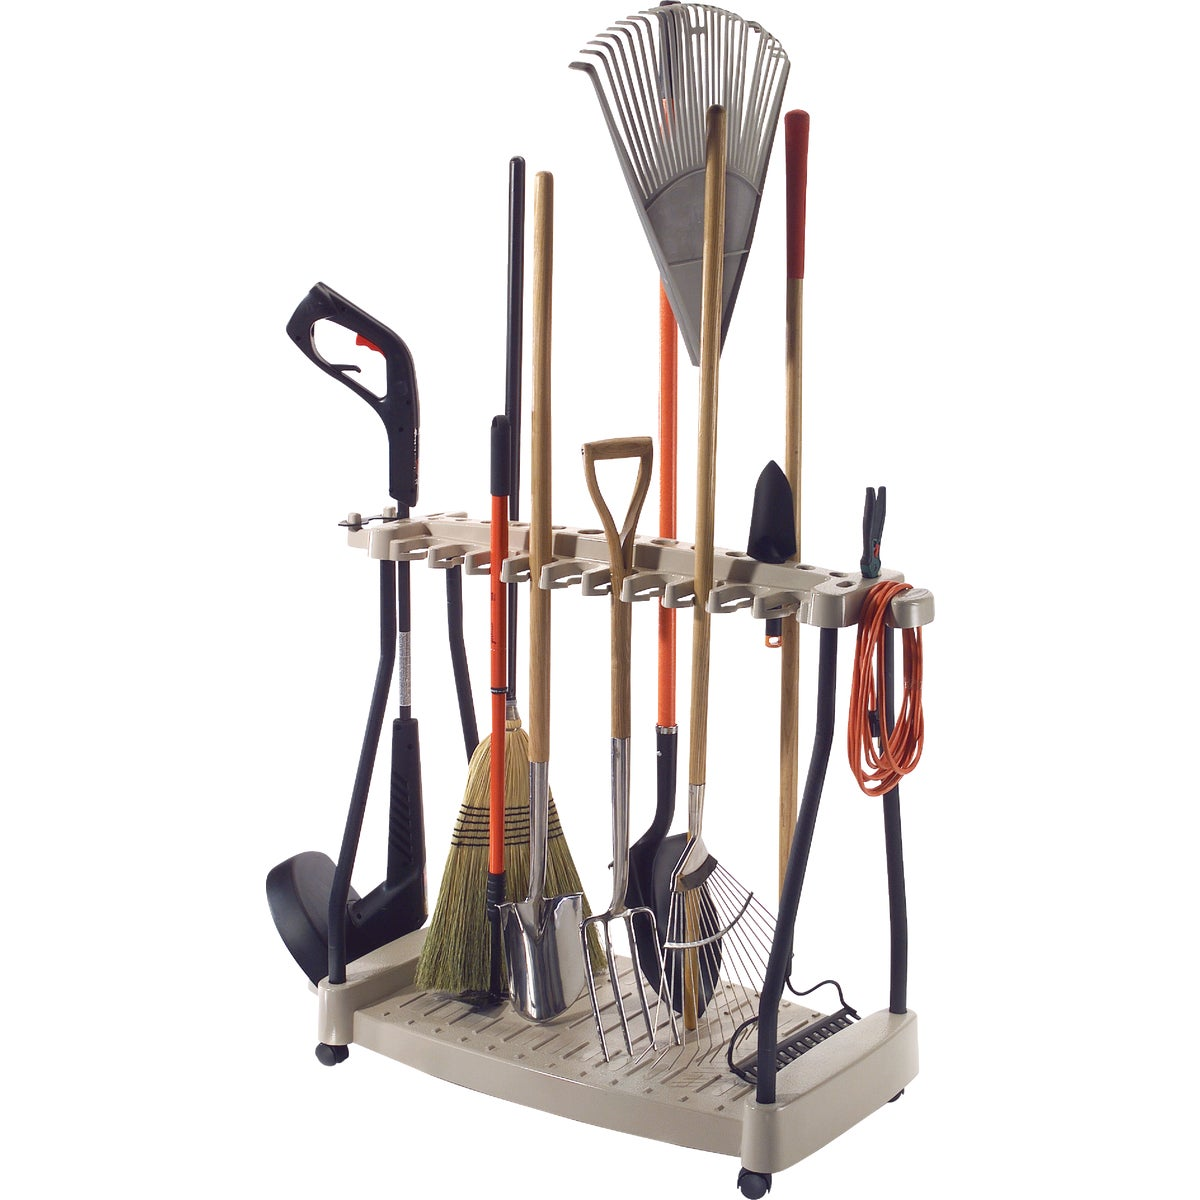 TOOL RACK W/WHEELS - RTC1000 by Suncast Corporation